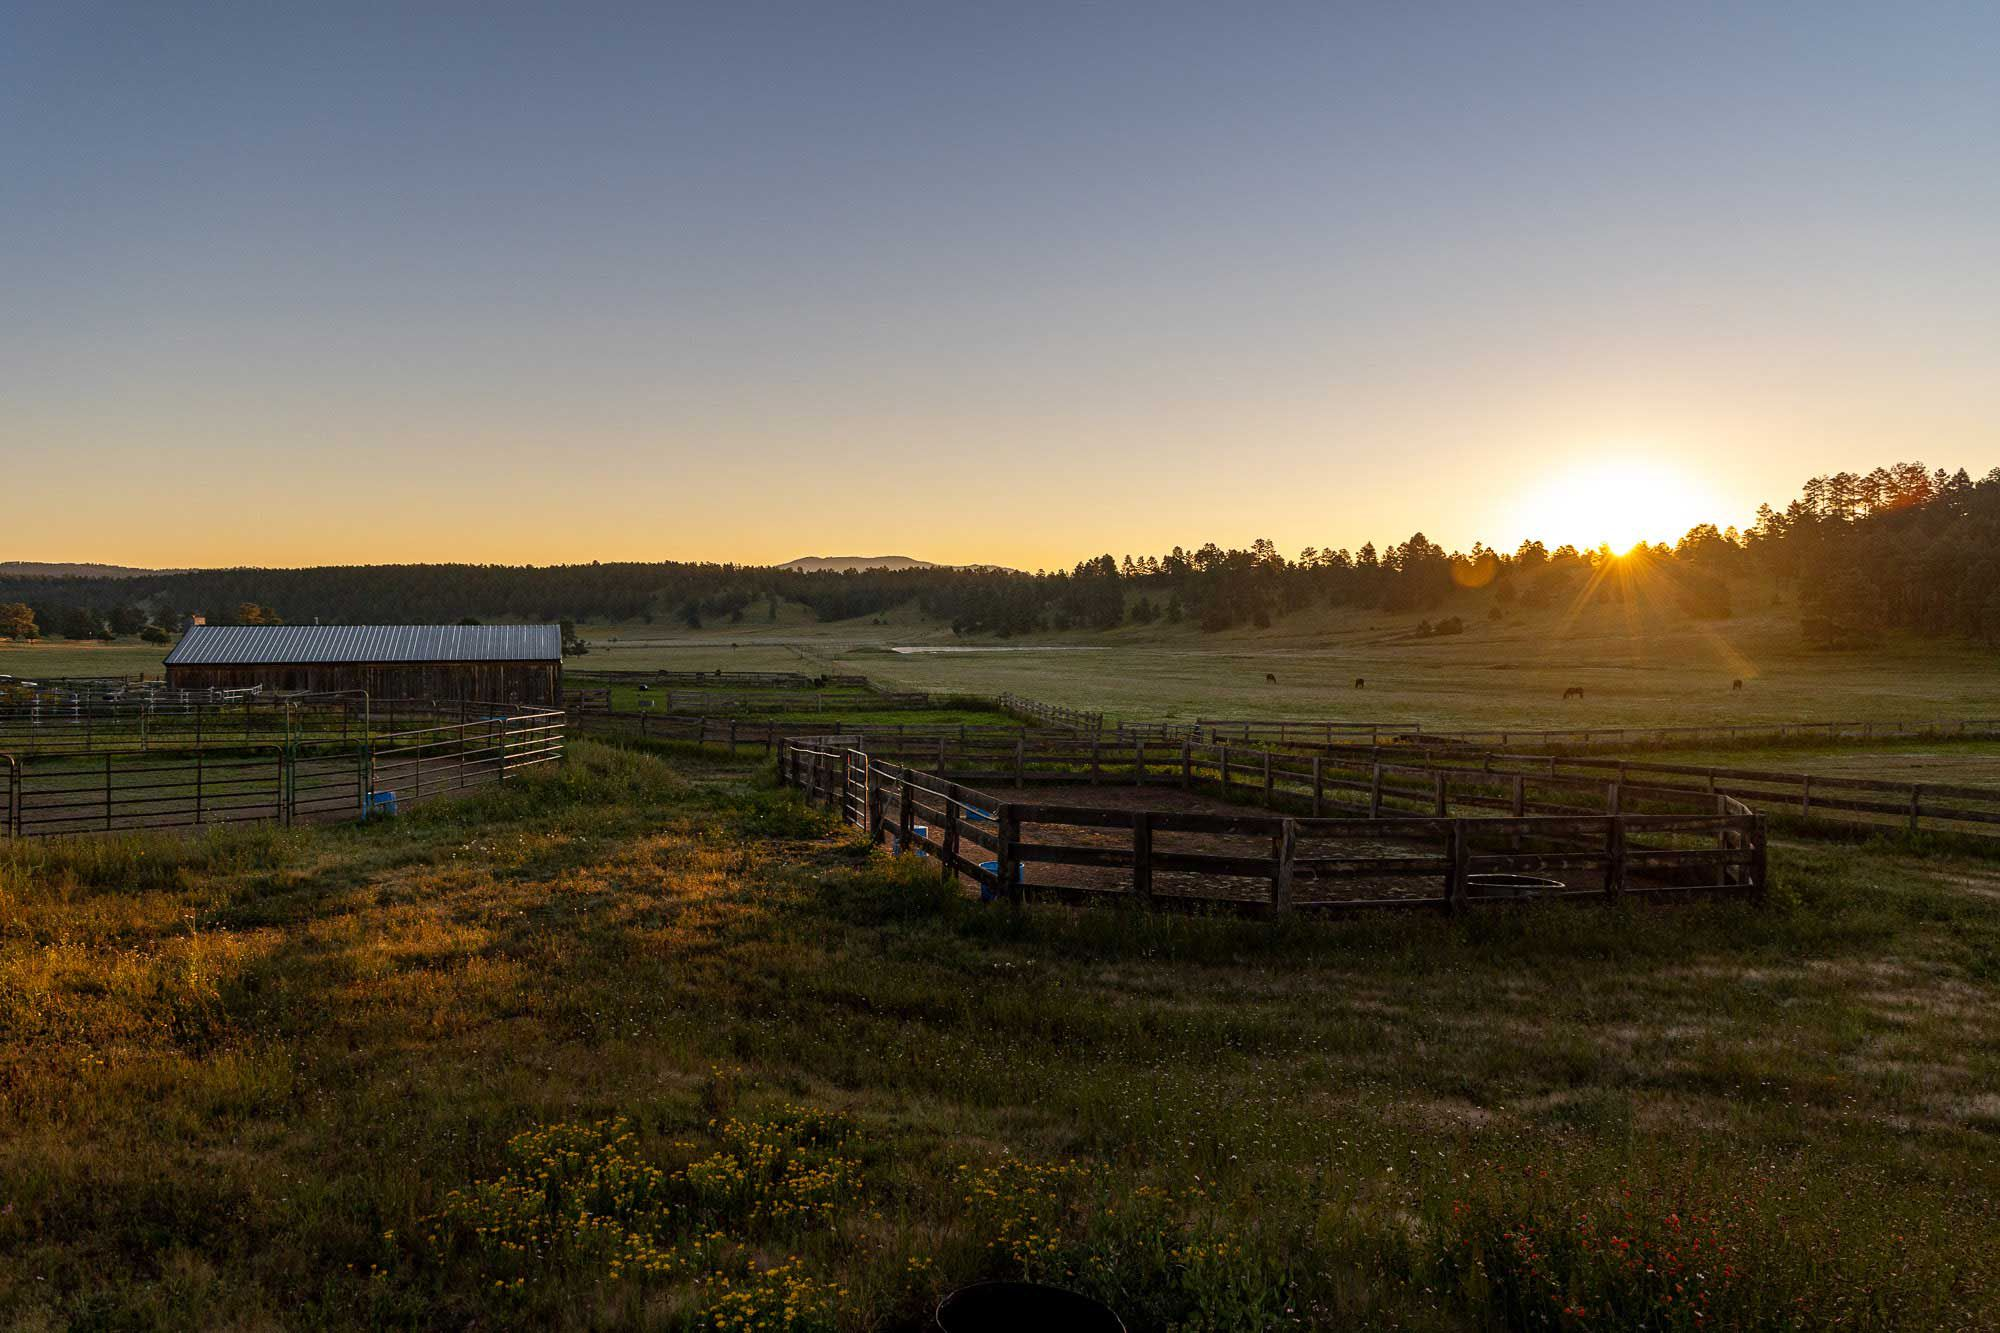 Sunrise over the paddocks and round pens at the N Bar Ranch.